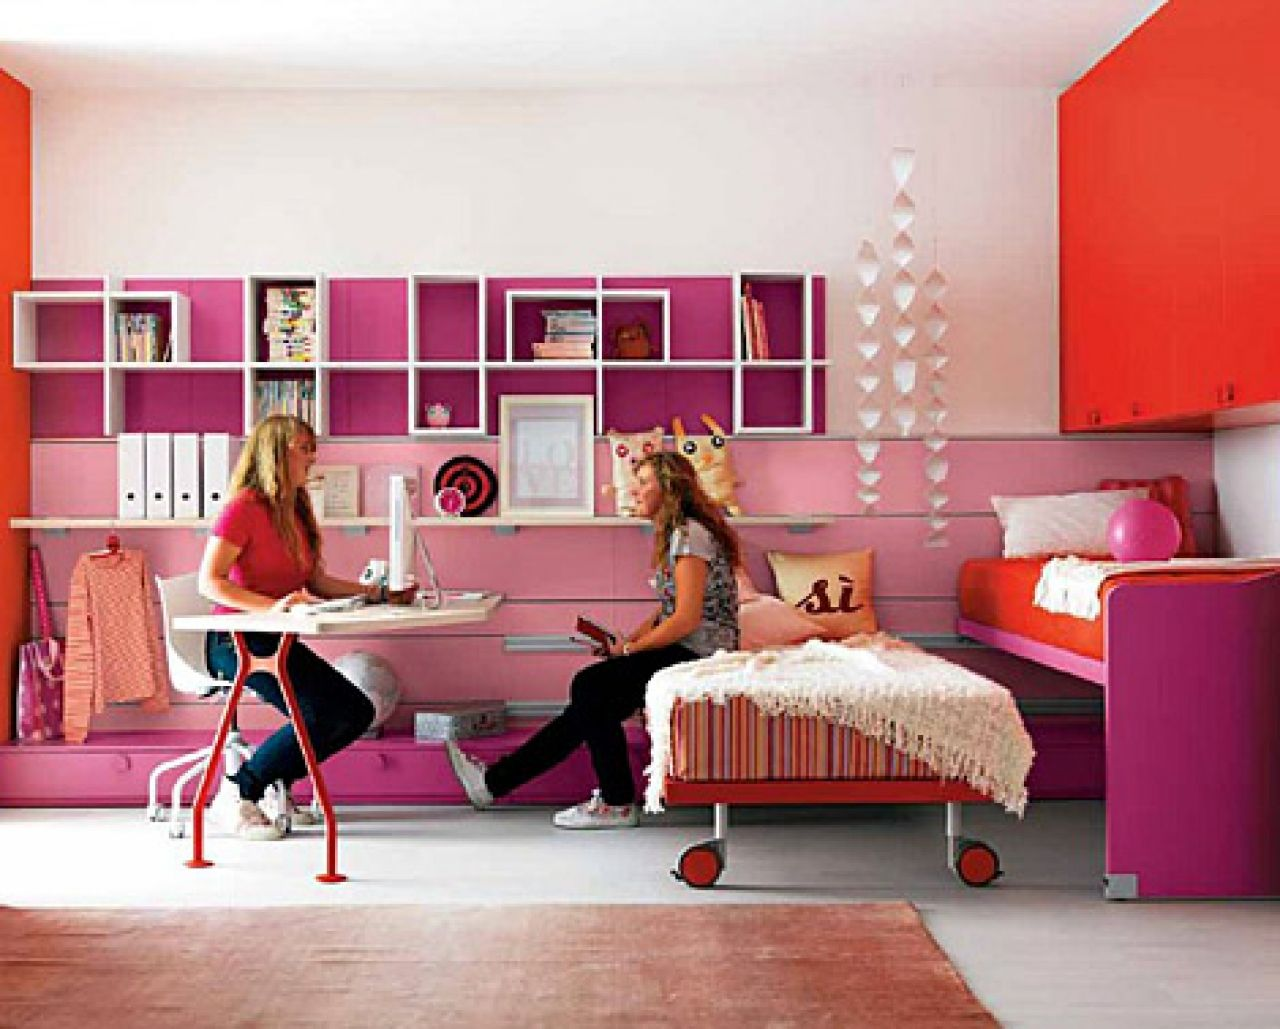 Bedroom Beauteous Teenage Girls Bedroom Design Inspiration For Twins With Pink Platform Bed A Bedroom Design Inspiration Small Room Design Girl Bedroom Designs